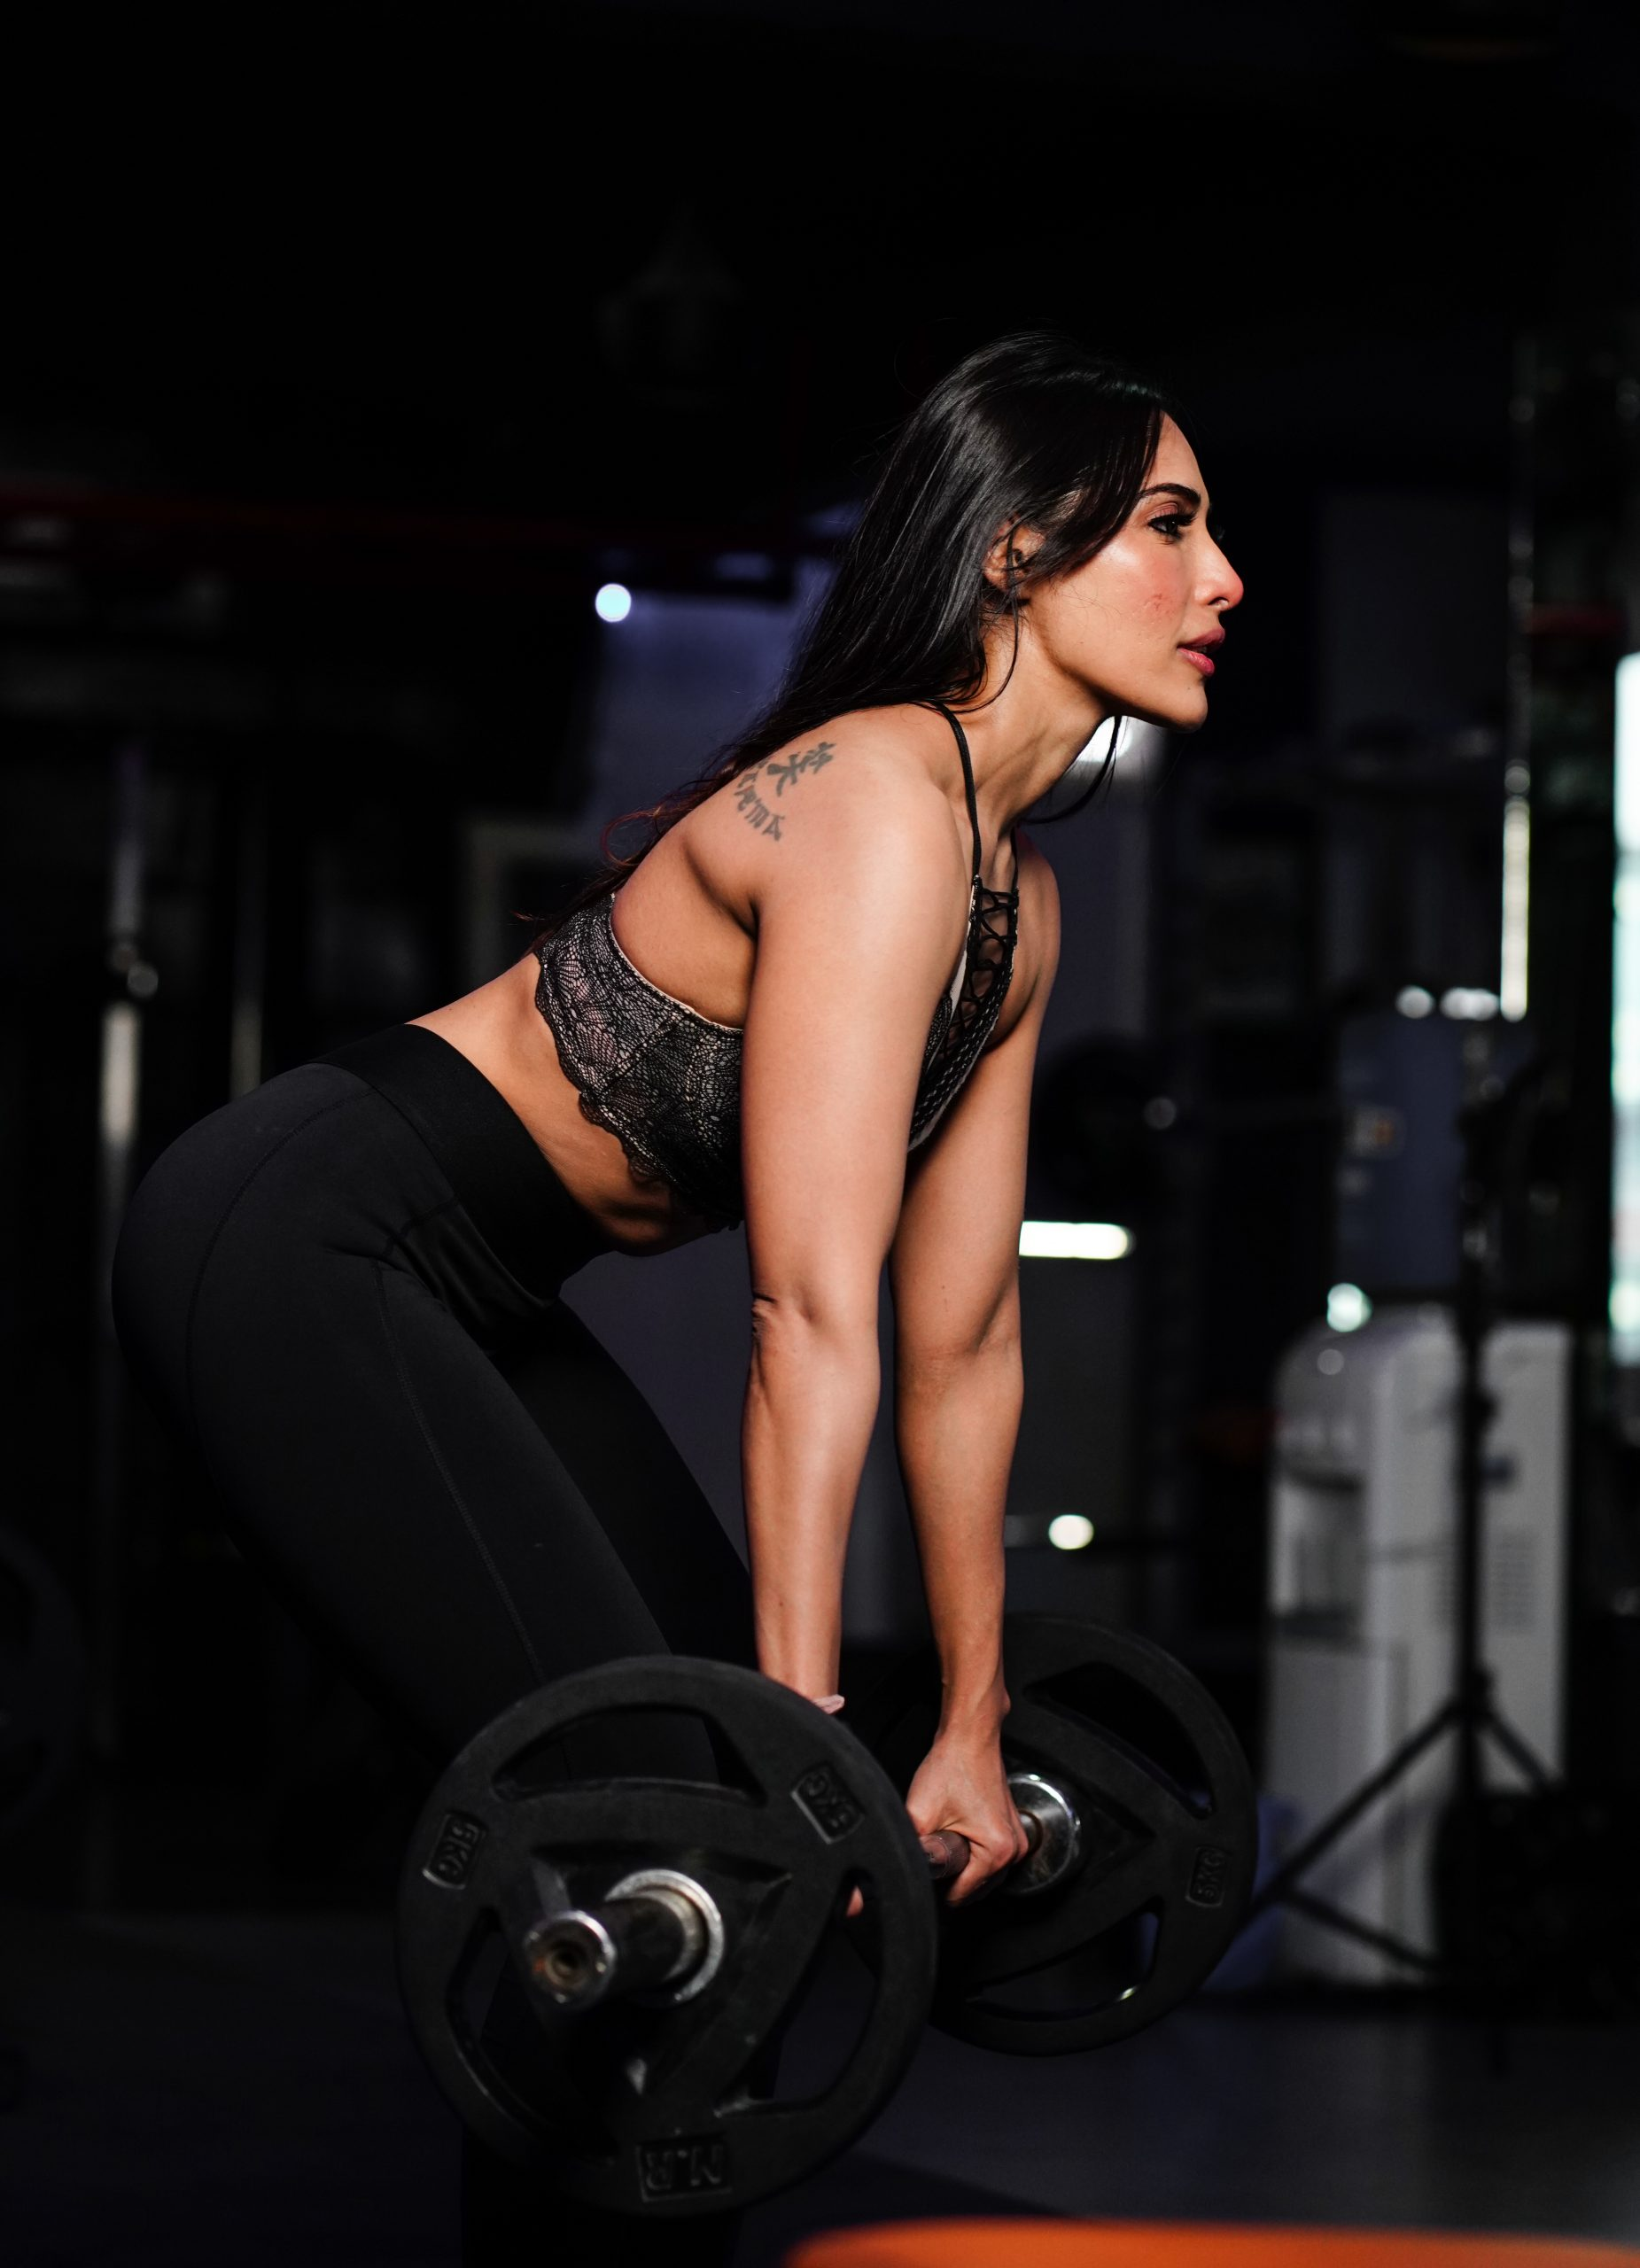 Fit young woman lifting a barbell